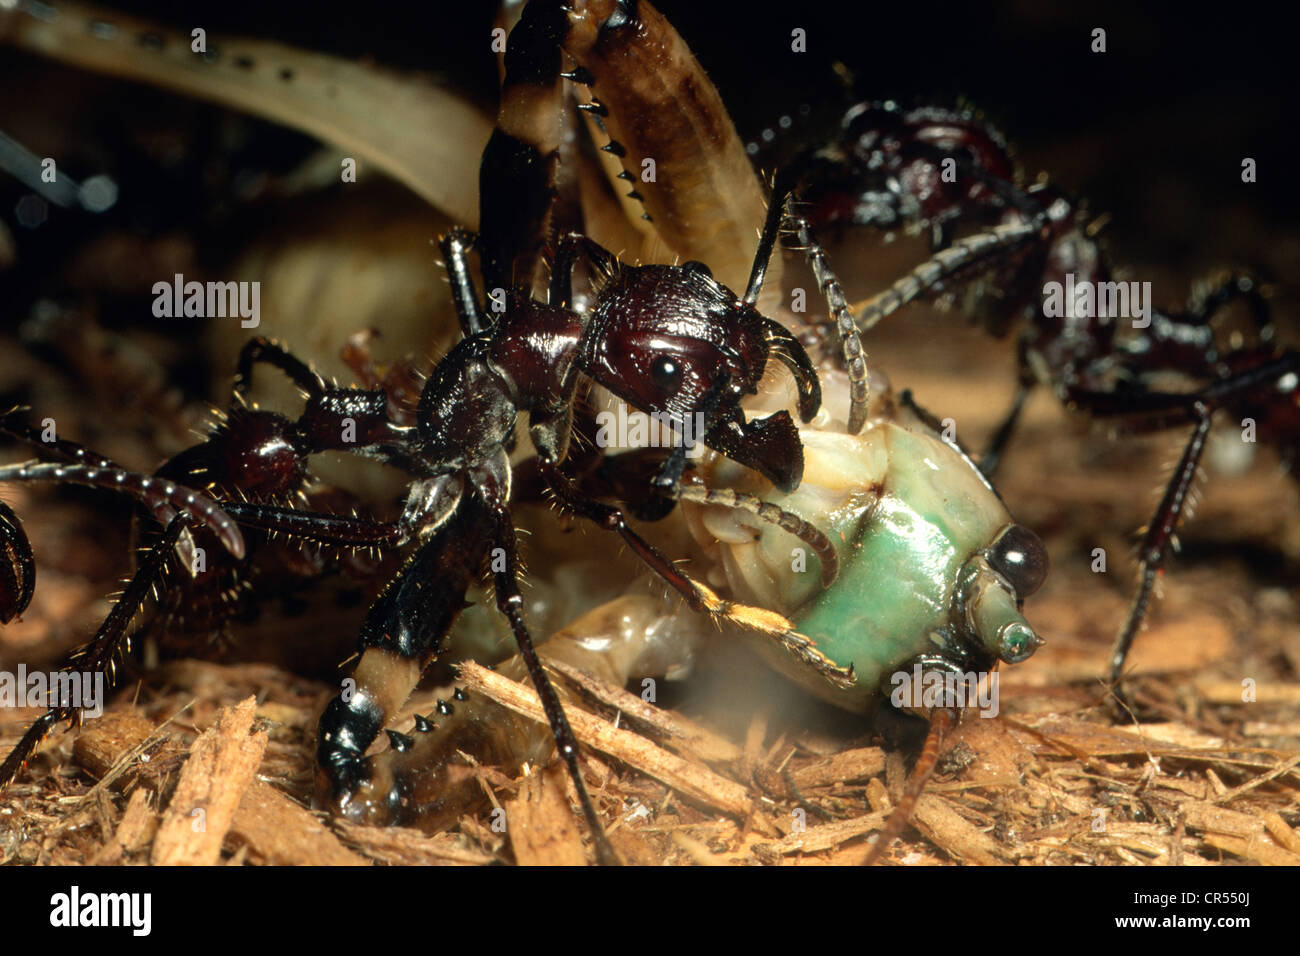 Bullet Ant, Paraponera clavata, carving up a katydid to take back to nest at the Cincinatti Zoo. Will feed to larvae. Stock Photo